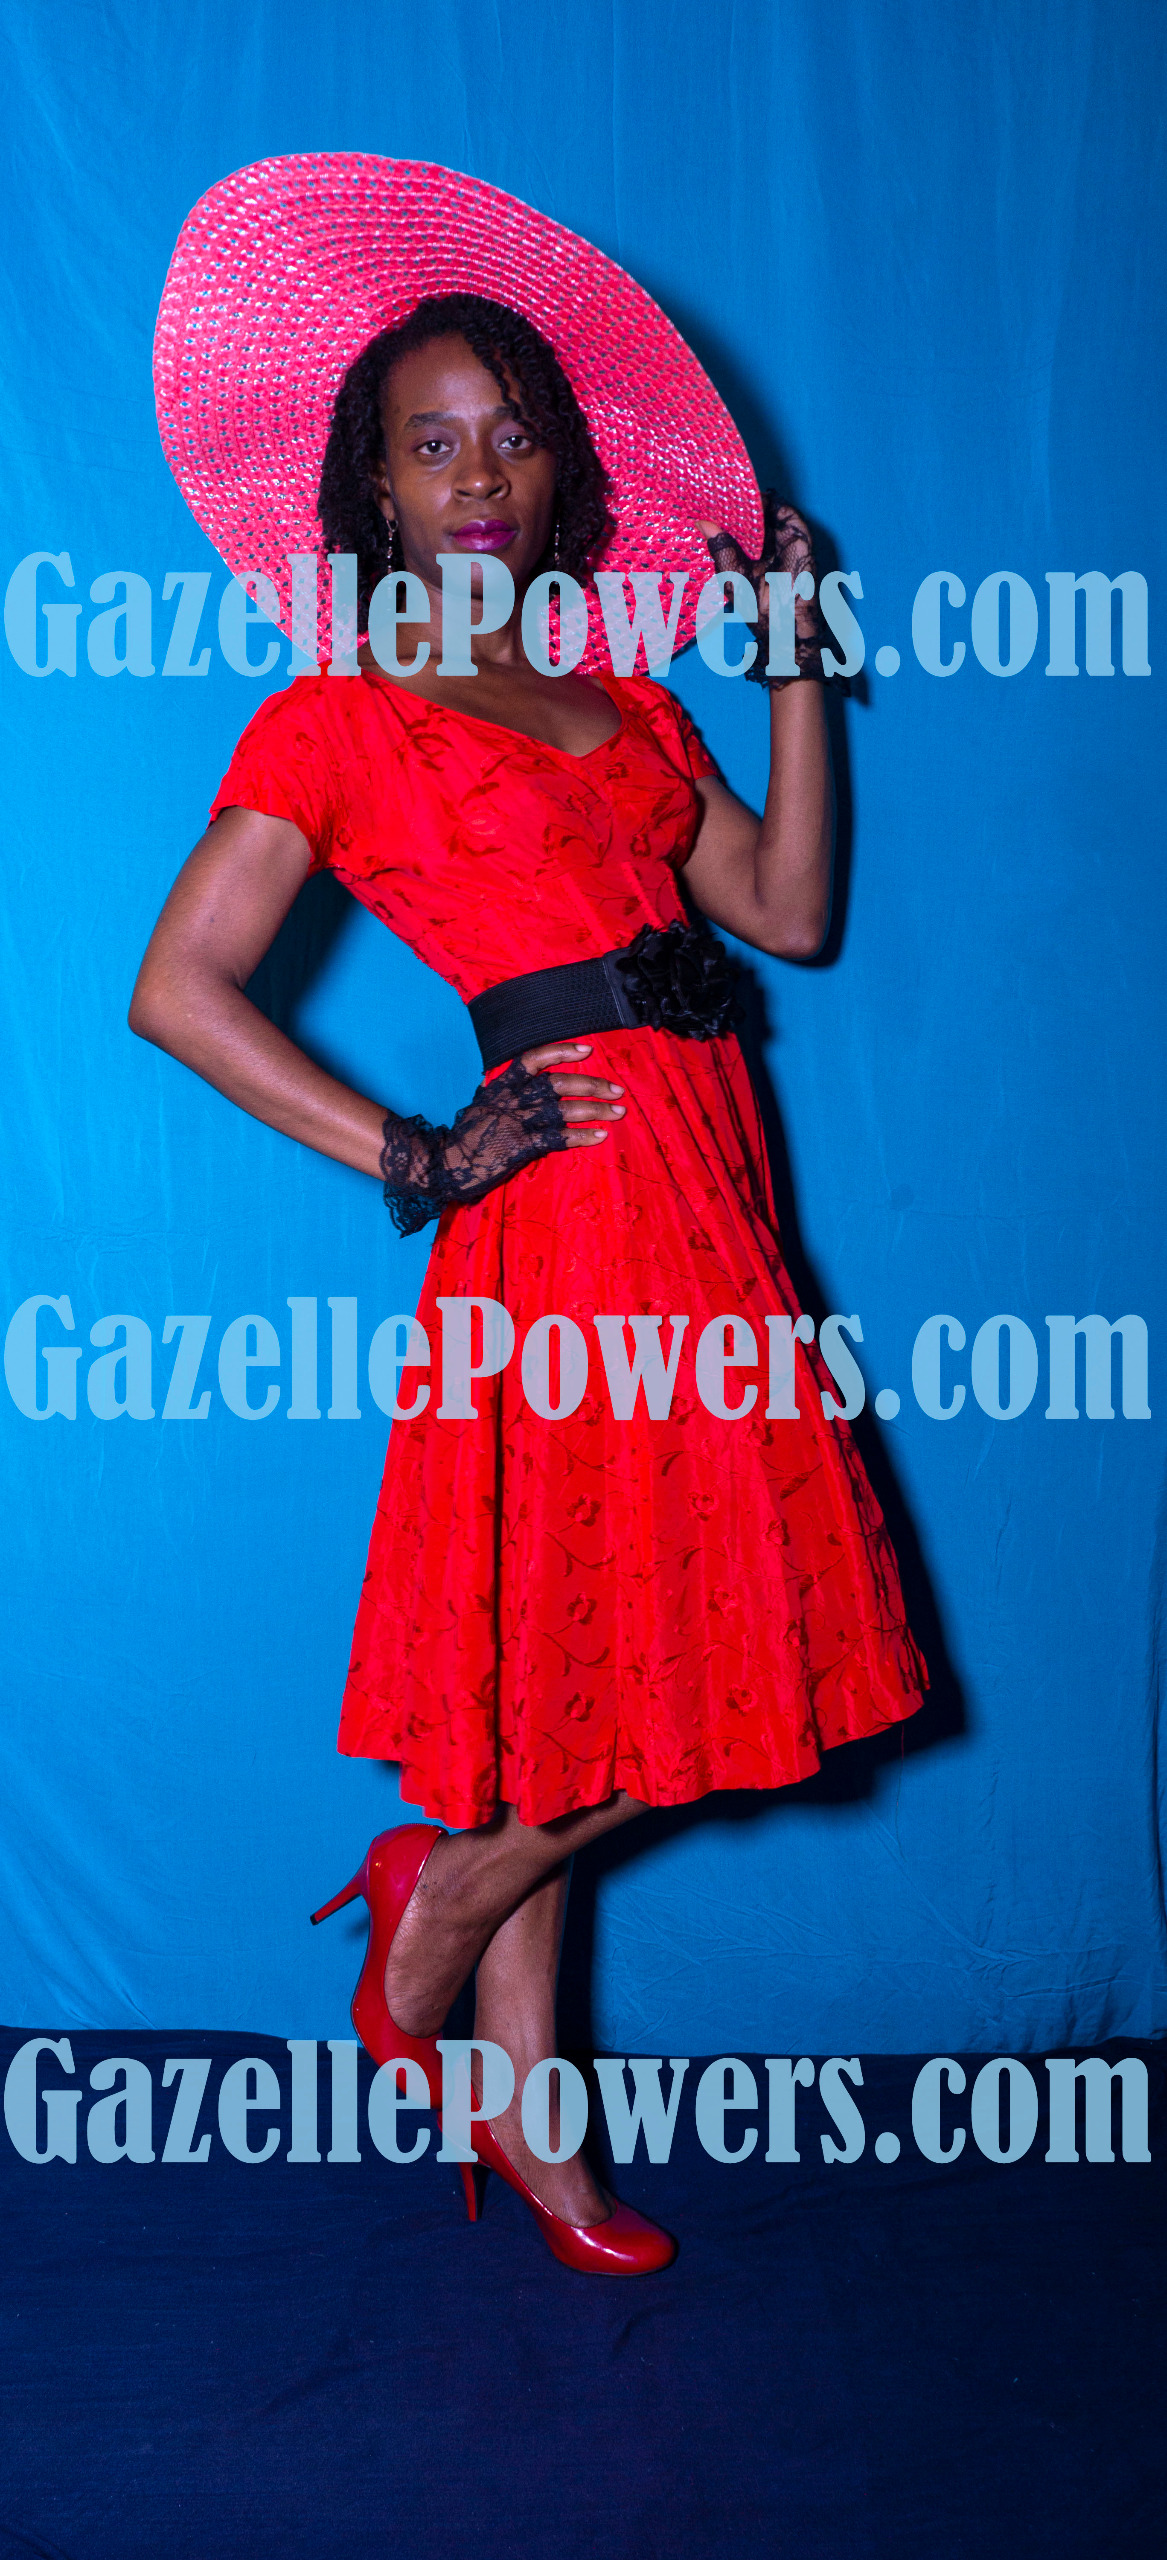 April 18th Session - Vintage Lady in Red Set of 5 Photos